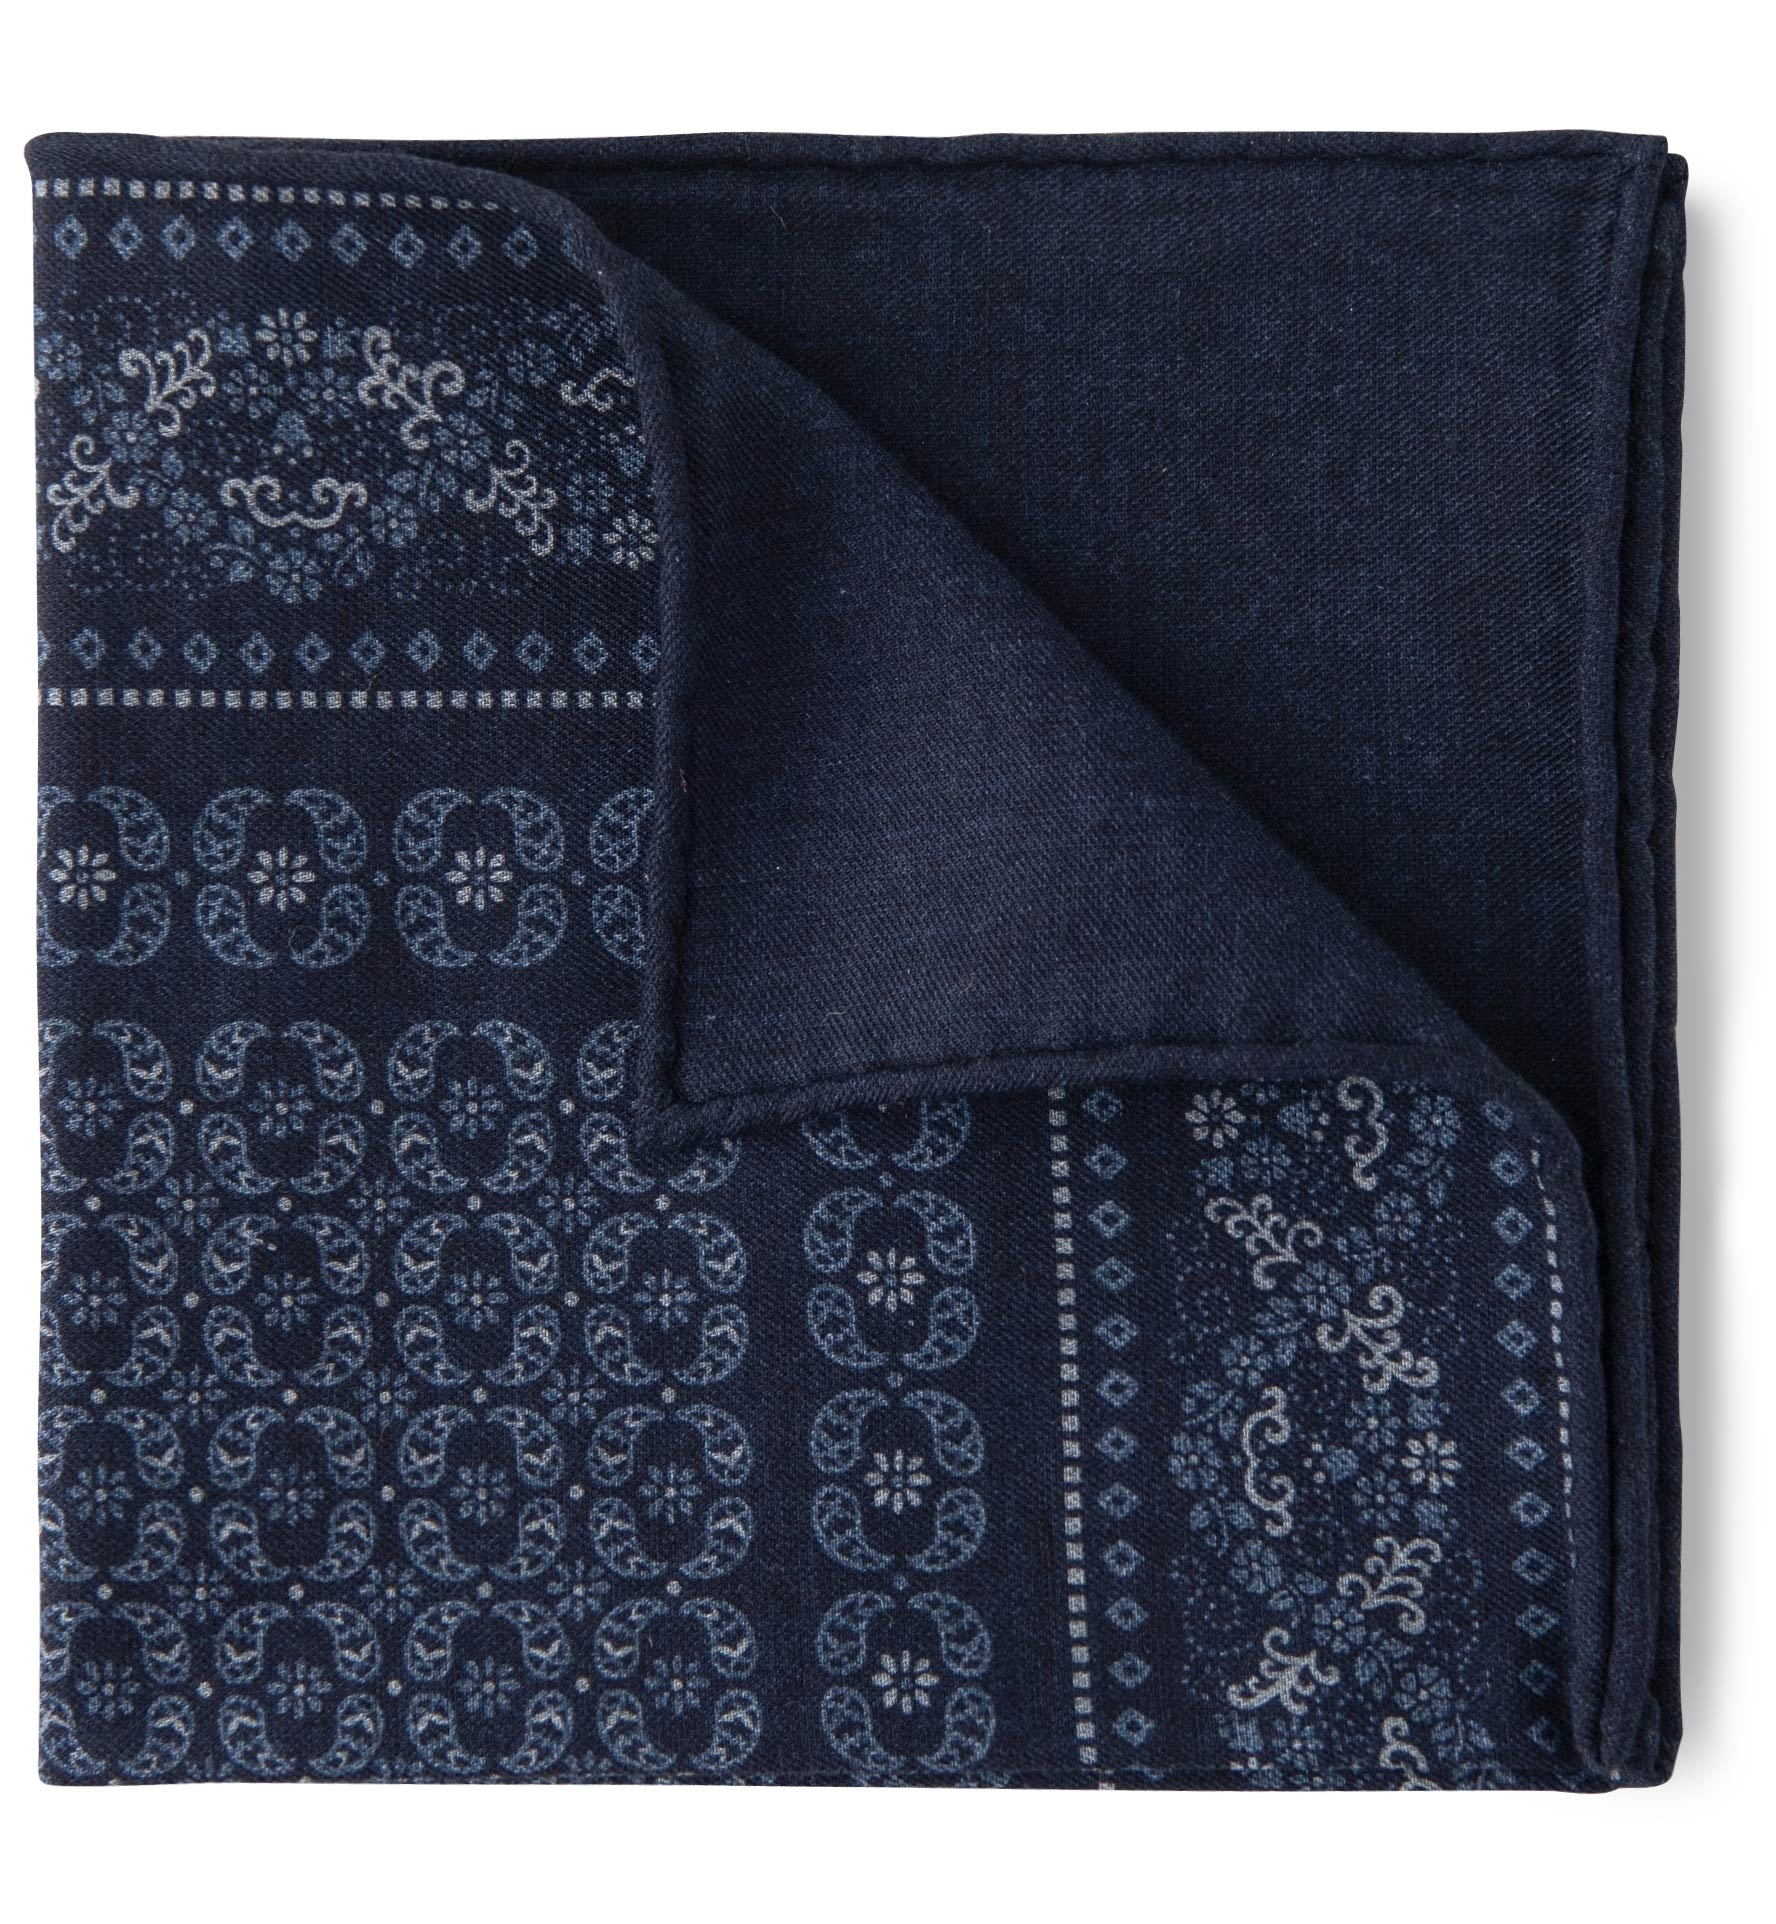 Zoom Image of Navy Cotton and Wool Floral Print Pocket Square